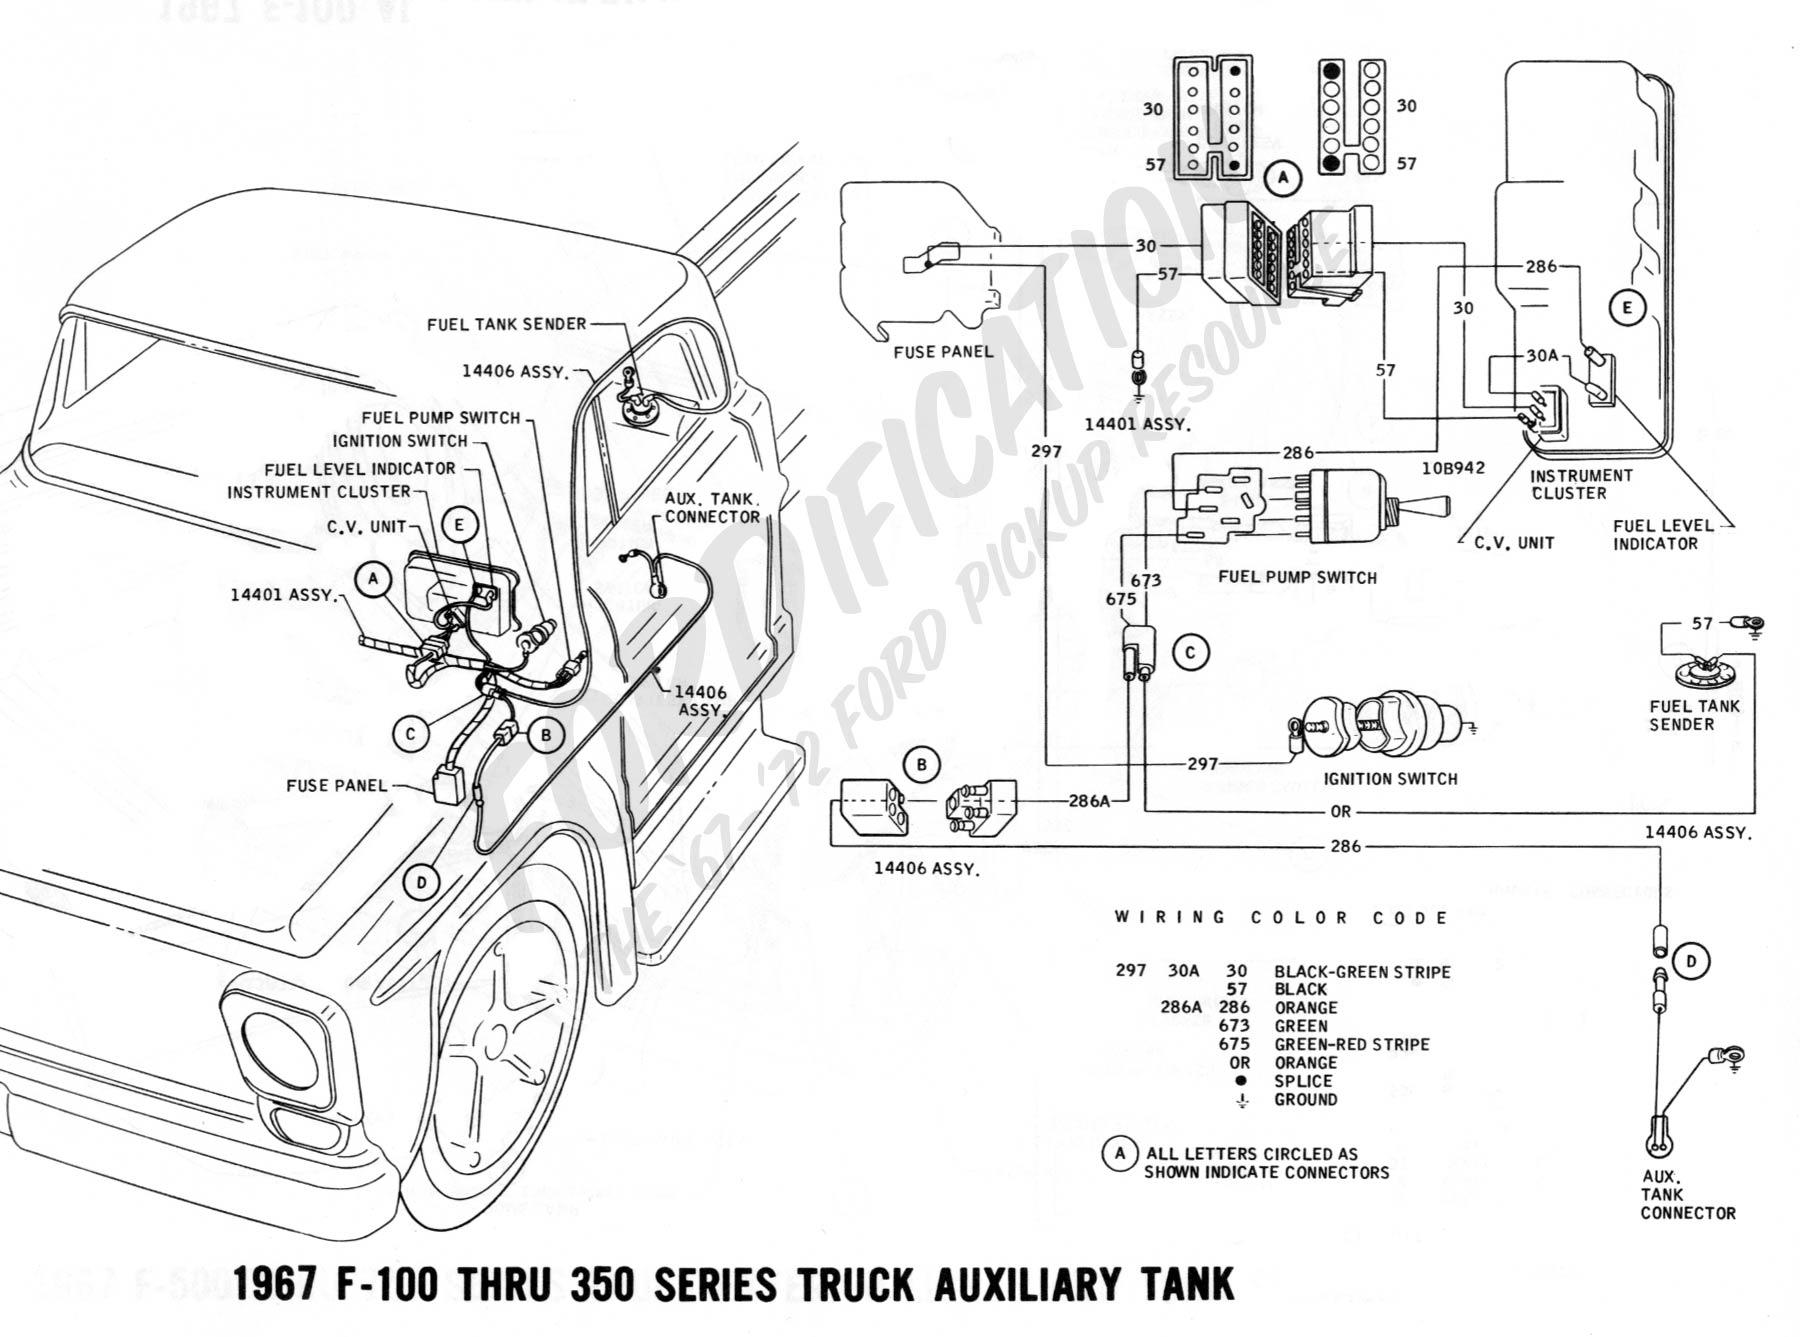 wiring 1967auxtank ford truck technical drawings and schematics section h wiring  at eliteediting.co